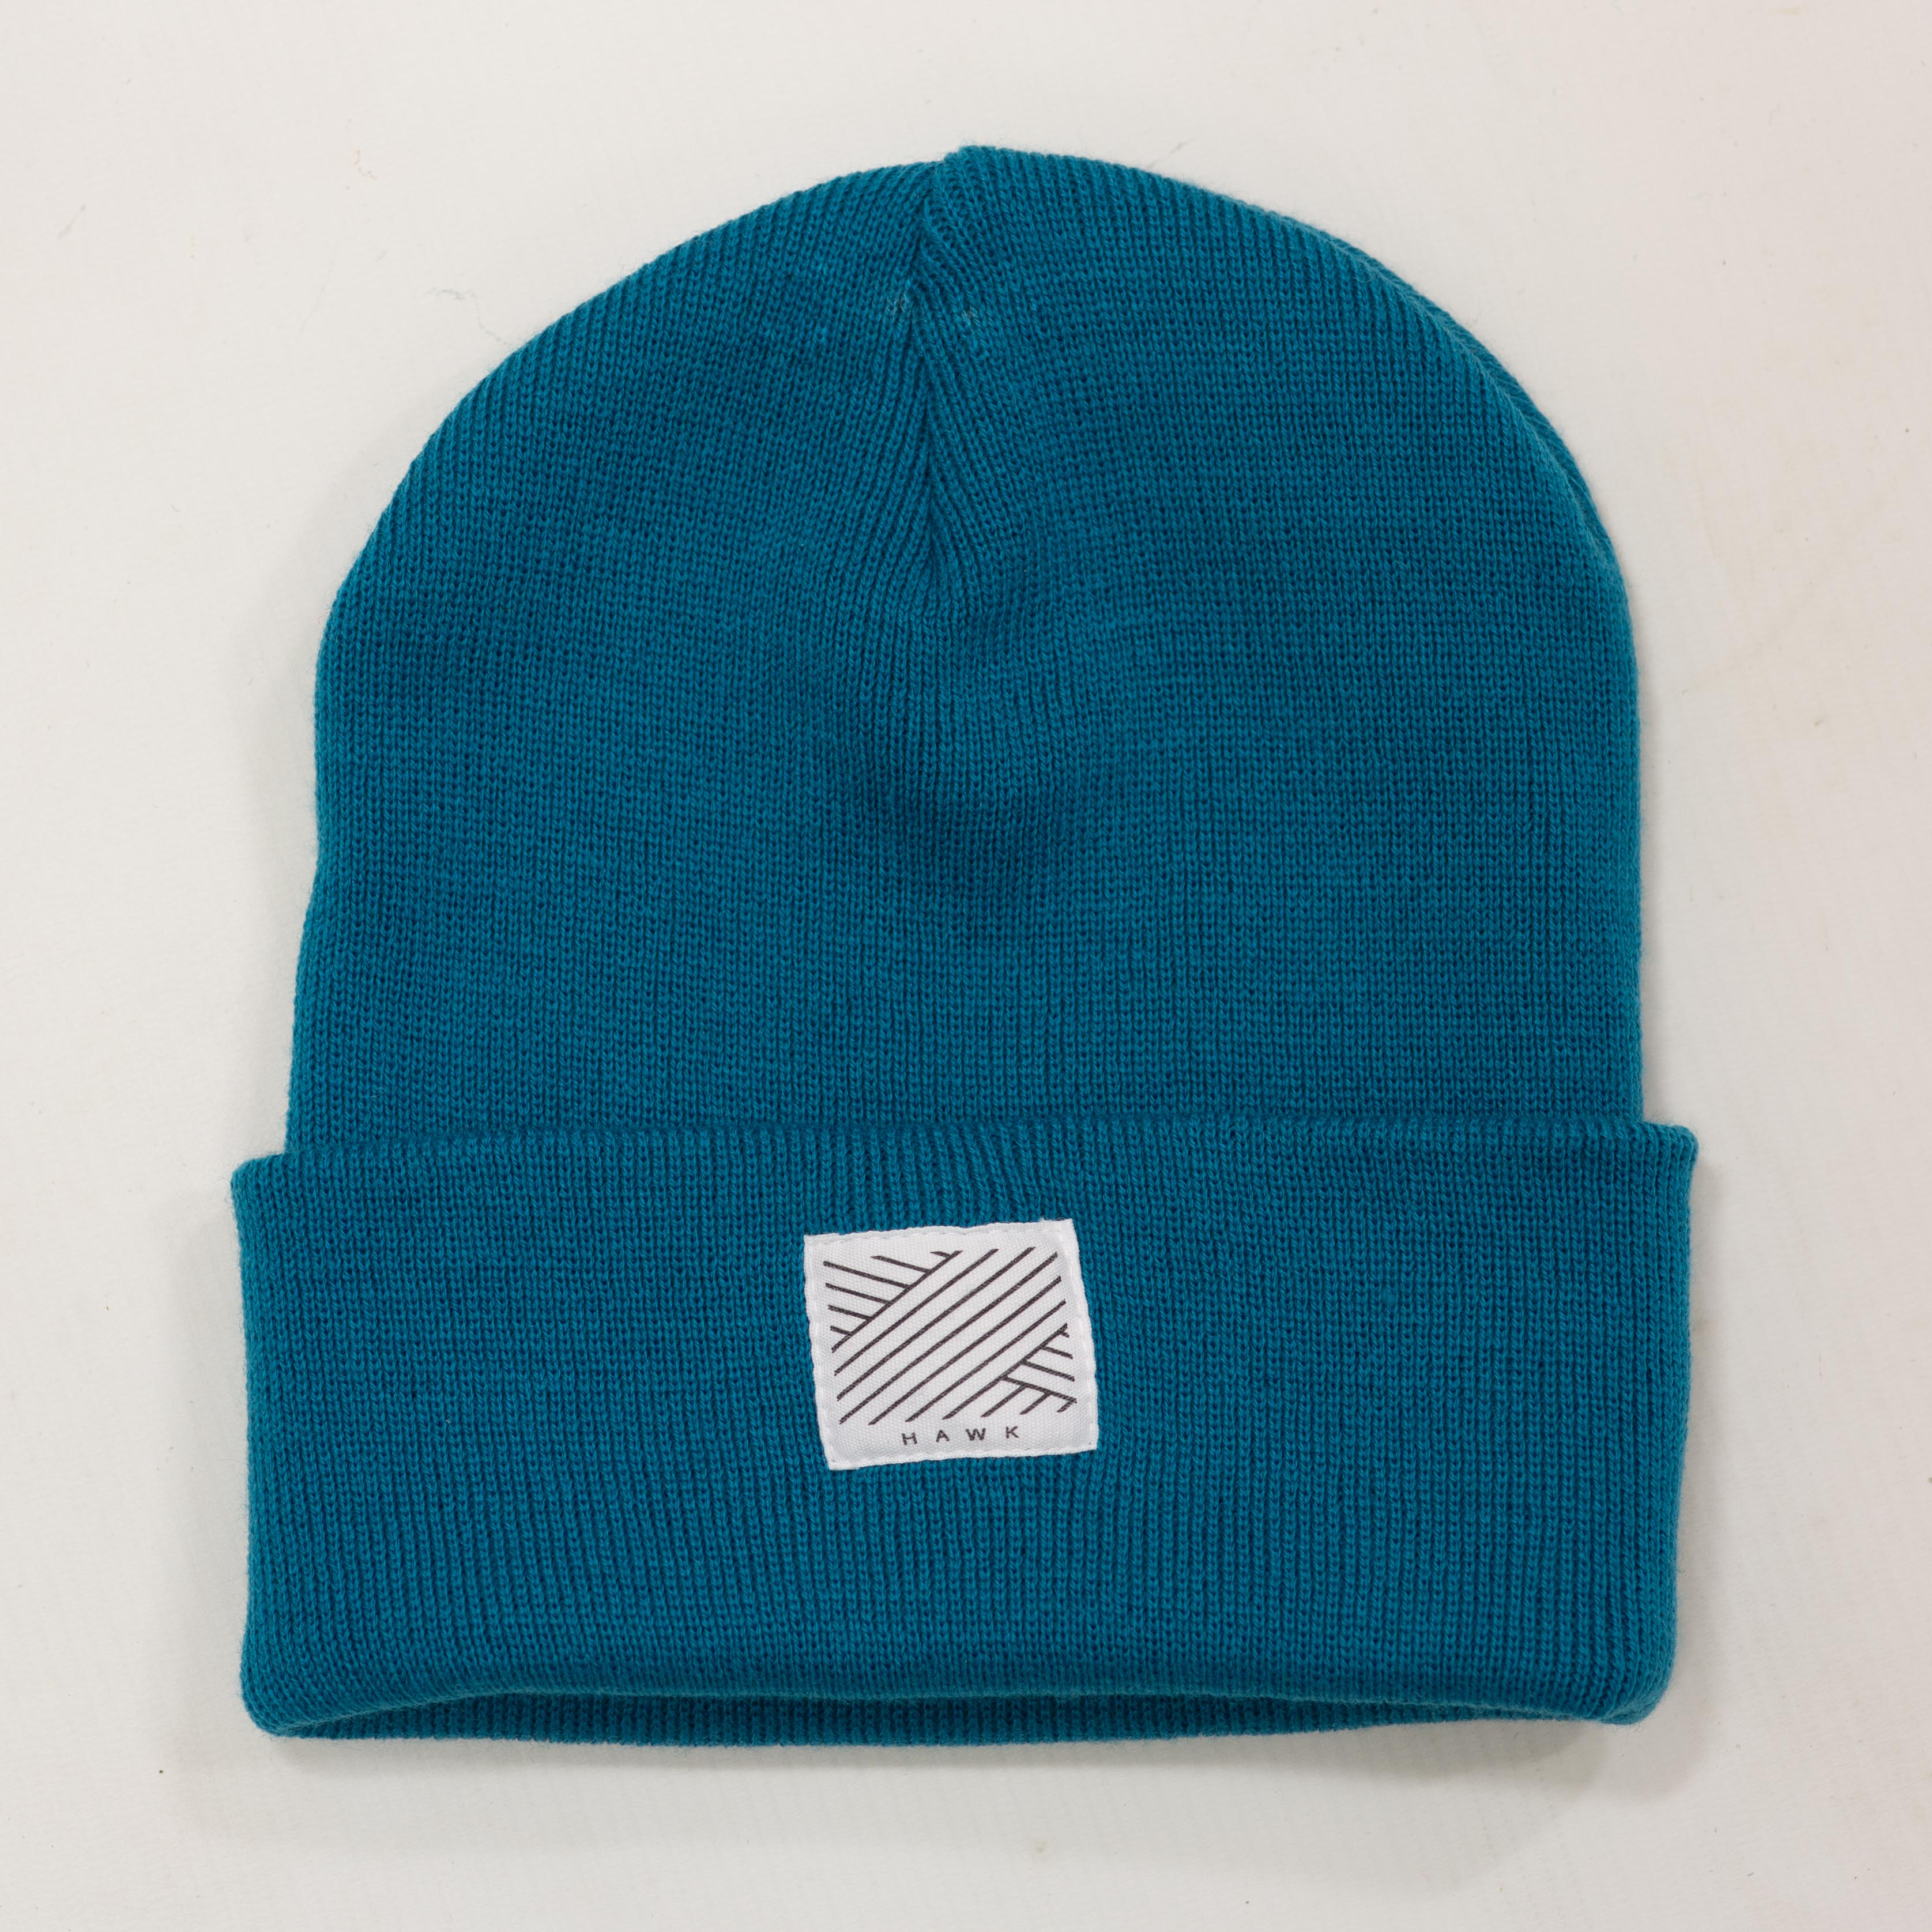 Intertwined - Emerald Beanie